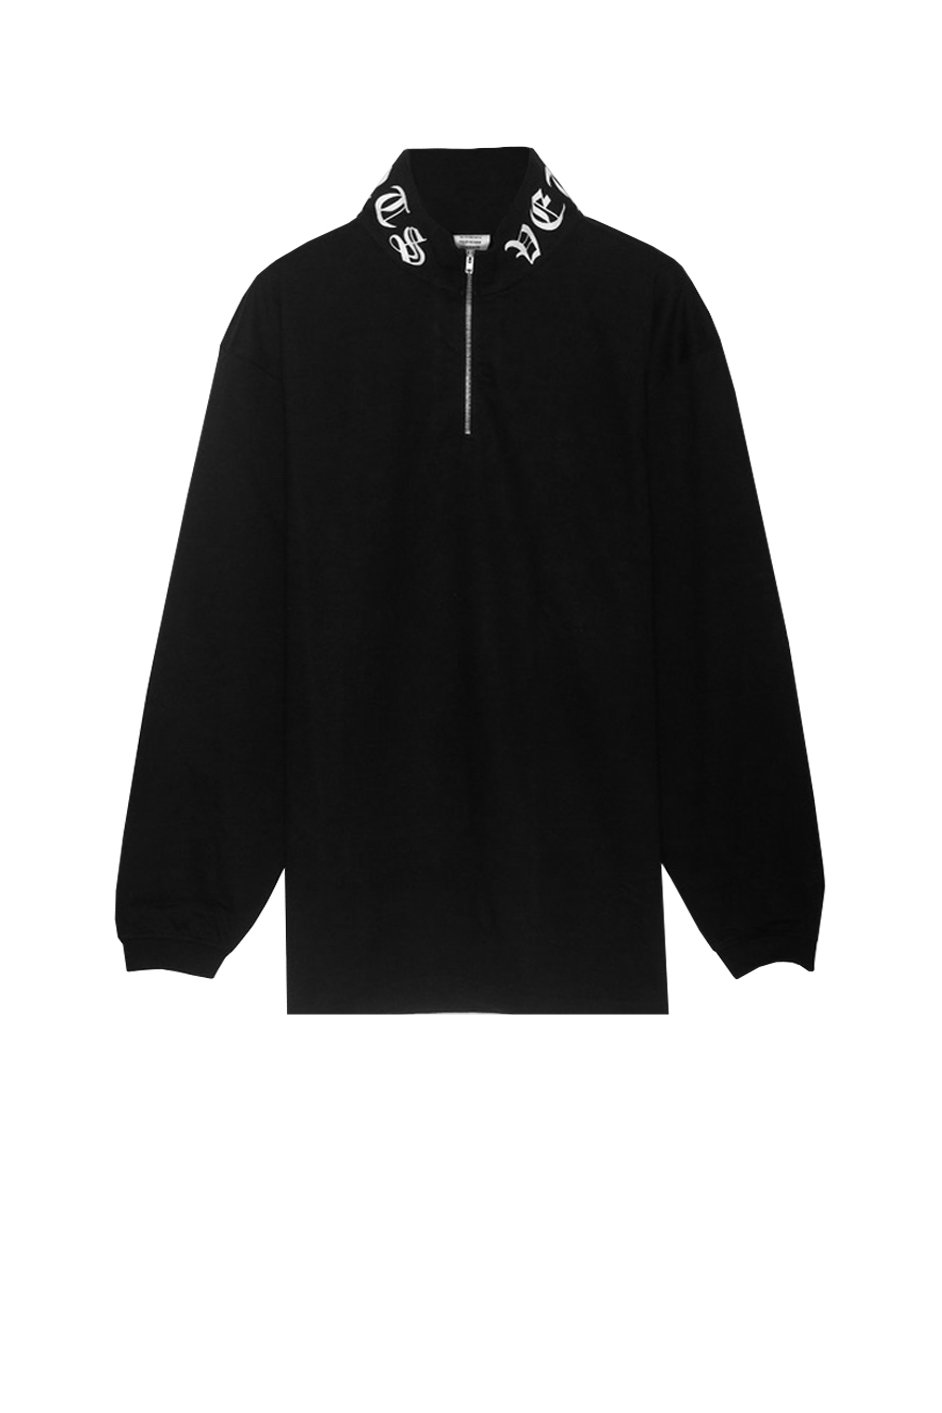 GOTHIC LOGO ZIP TURTLENECK